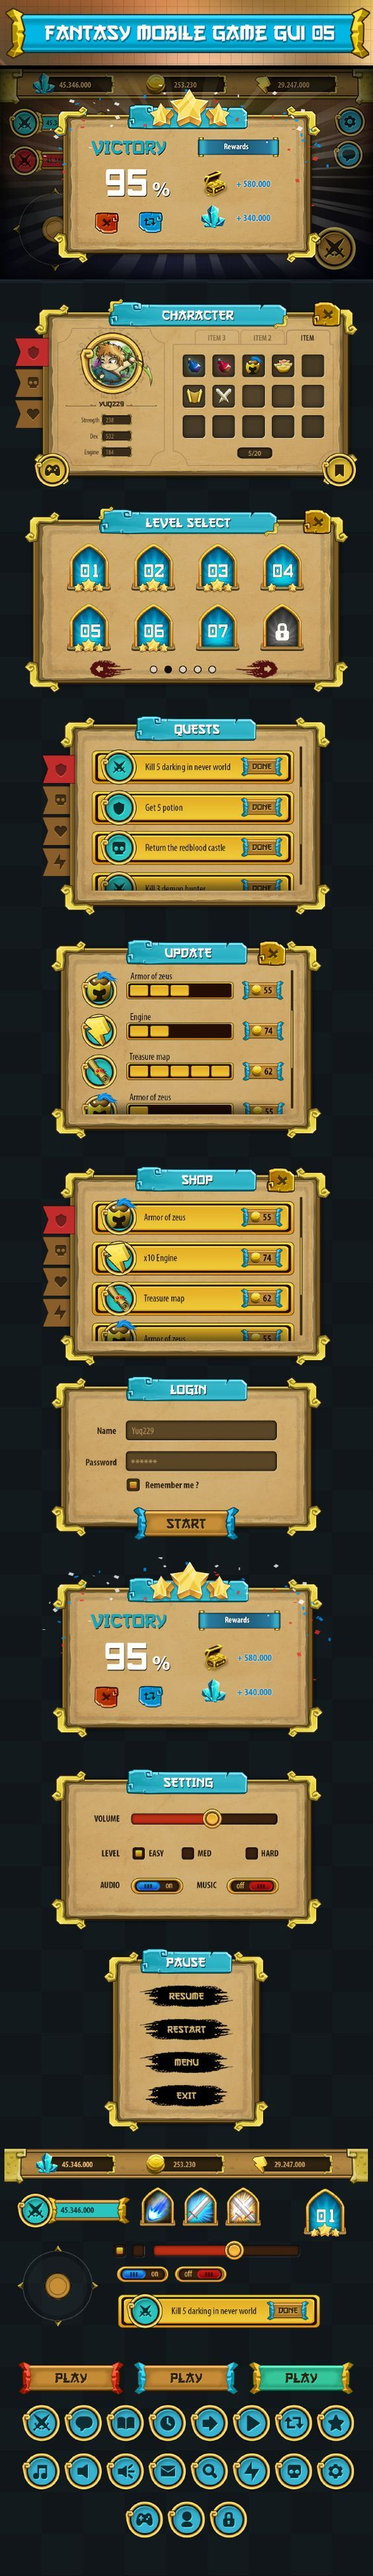 game gui pack 05 by Ryan Do, via Behance: